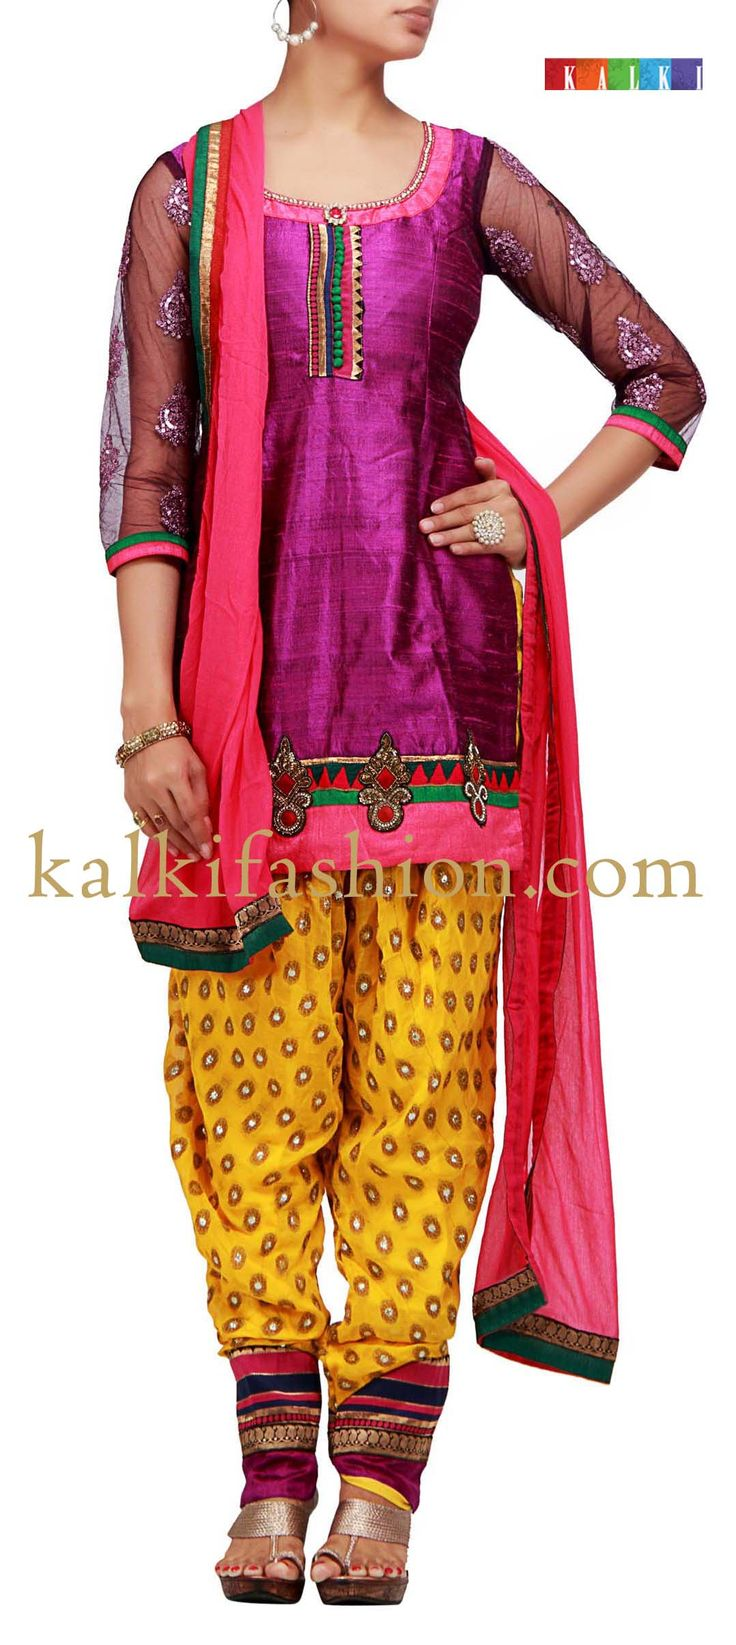 Buy it now http://www.kalkifashion.com/patiala-suit-in-purple-with-embroidered-patch.html Patiala suit in purple with embroidered patch